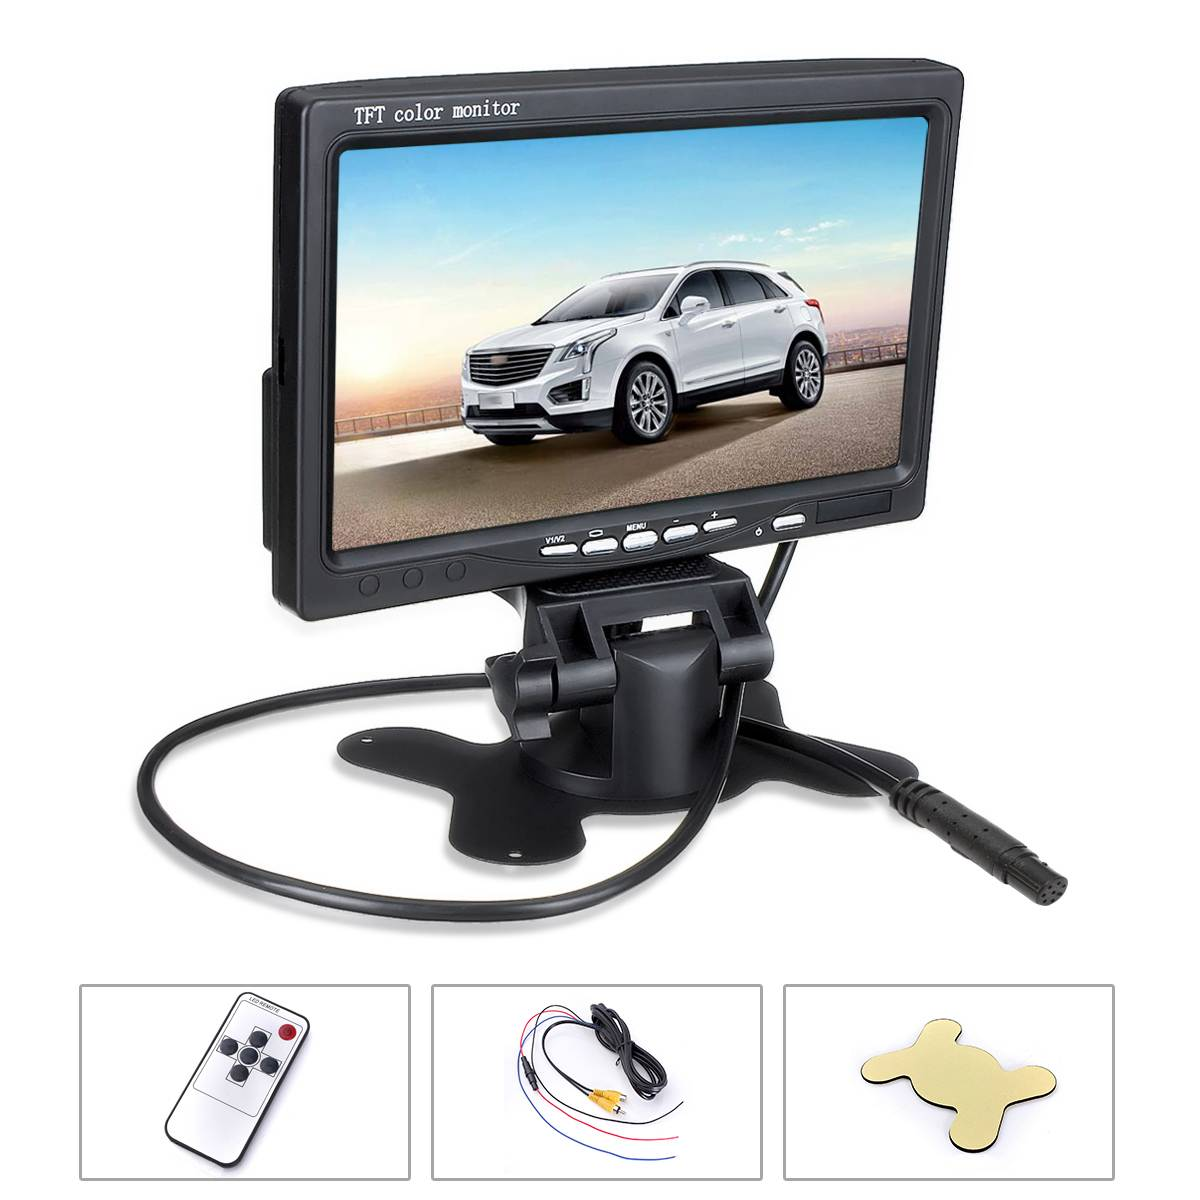 Universal 7 Inch TFT LCD Display Screen 480x234 Car Monitor For CCTV Reversing Rearview Backup CameraUniversal 7 Inch TFT LCD Display Screen 480x234 Car Monitor For CCTV Reversing Rearview Backup Camera